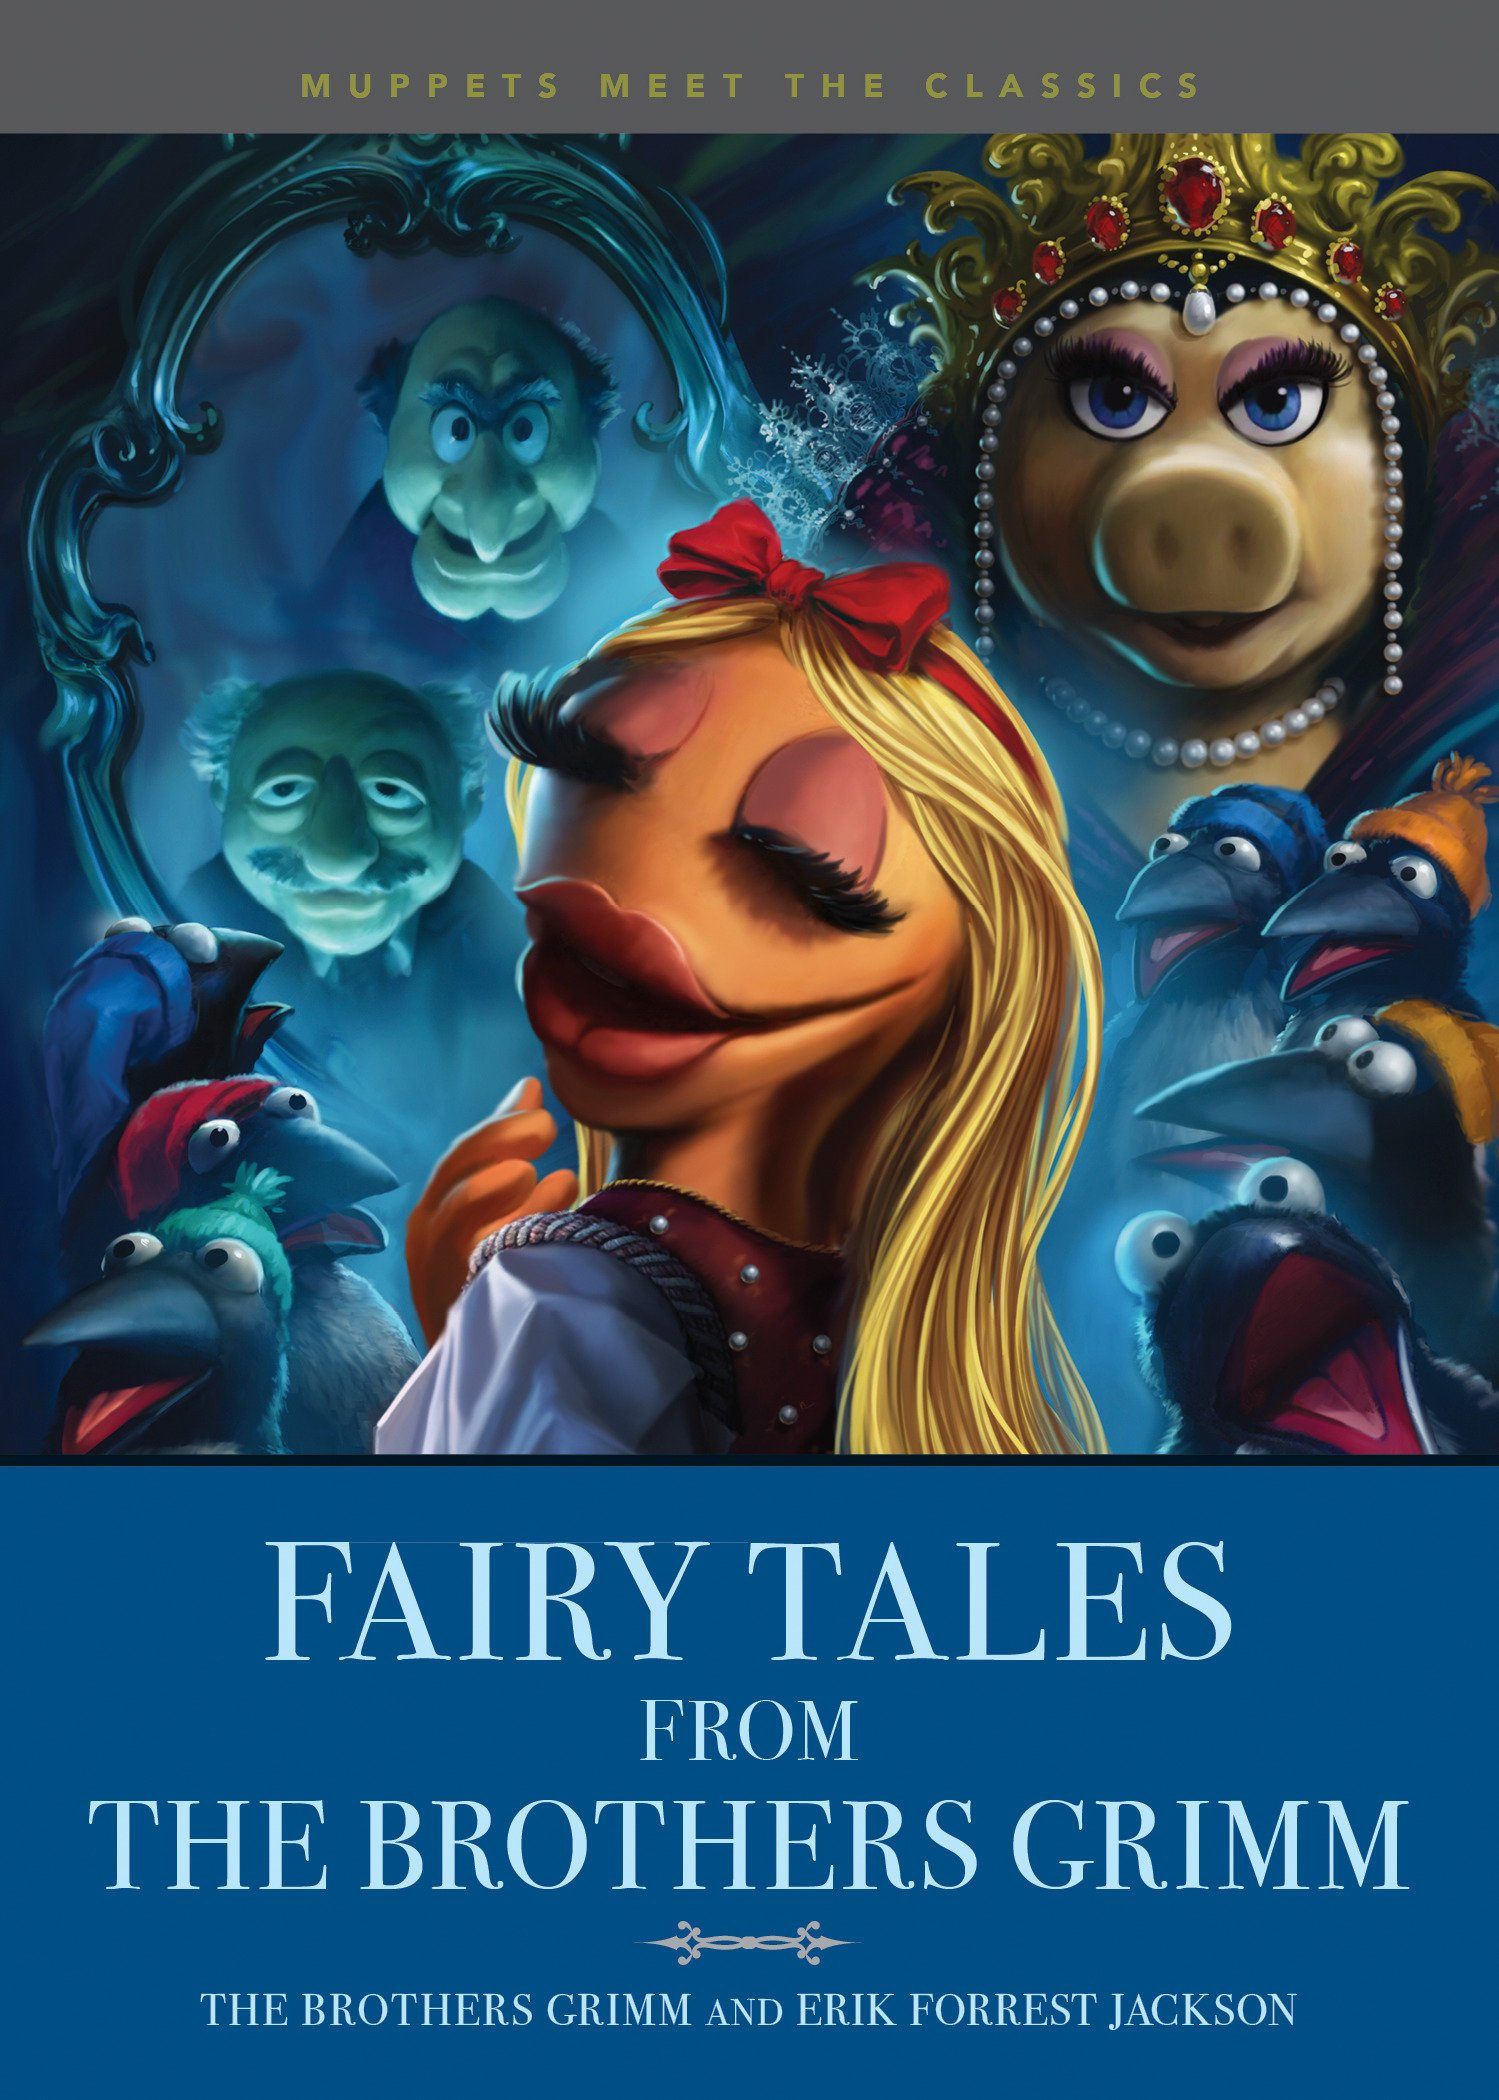 Muppets Meetthe ClassicsBrothers Grimm